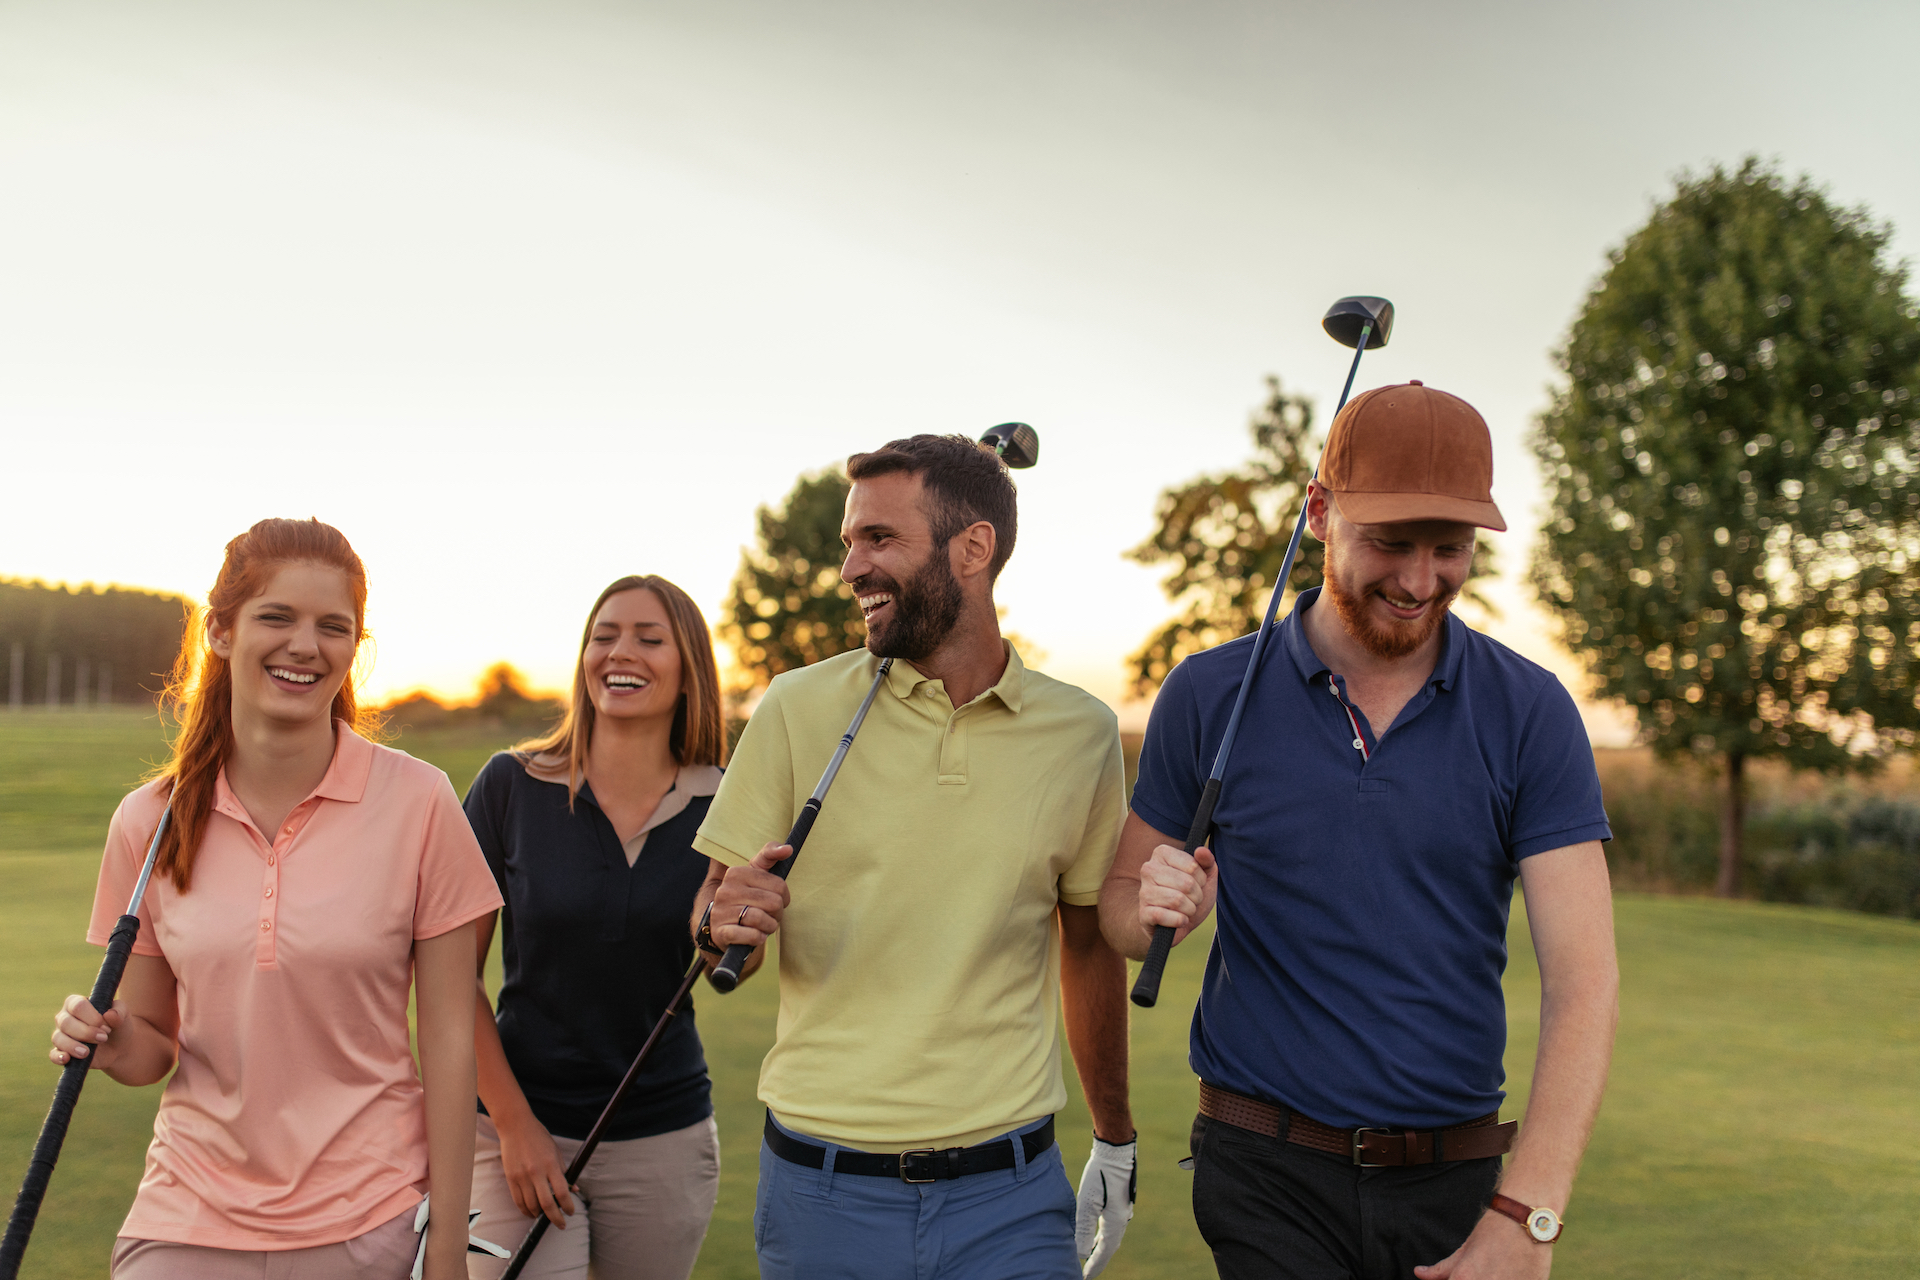 Friends walking through a golf course together